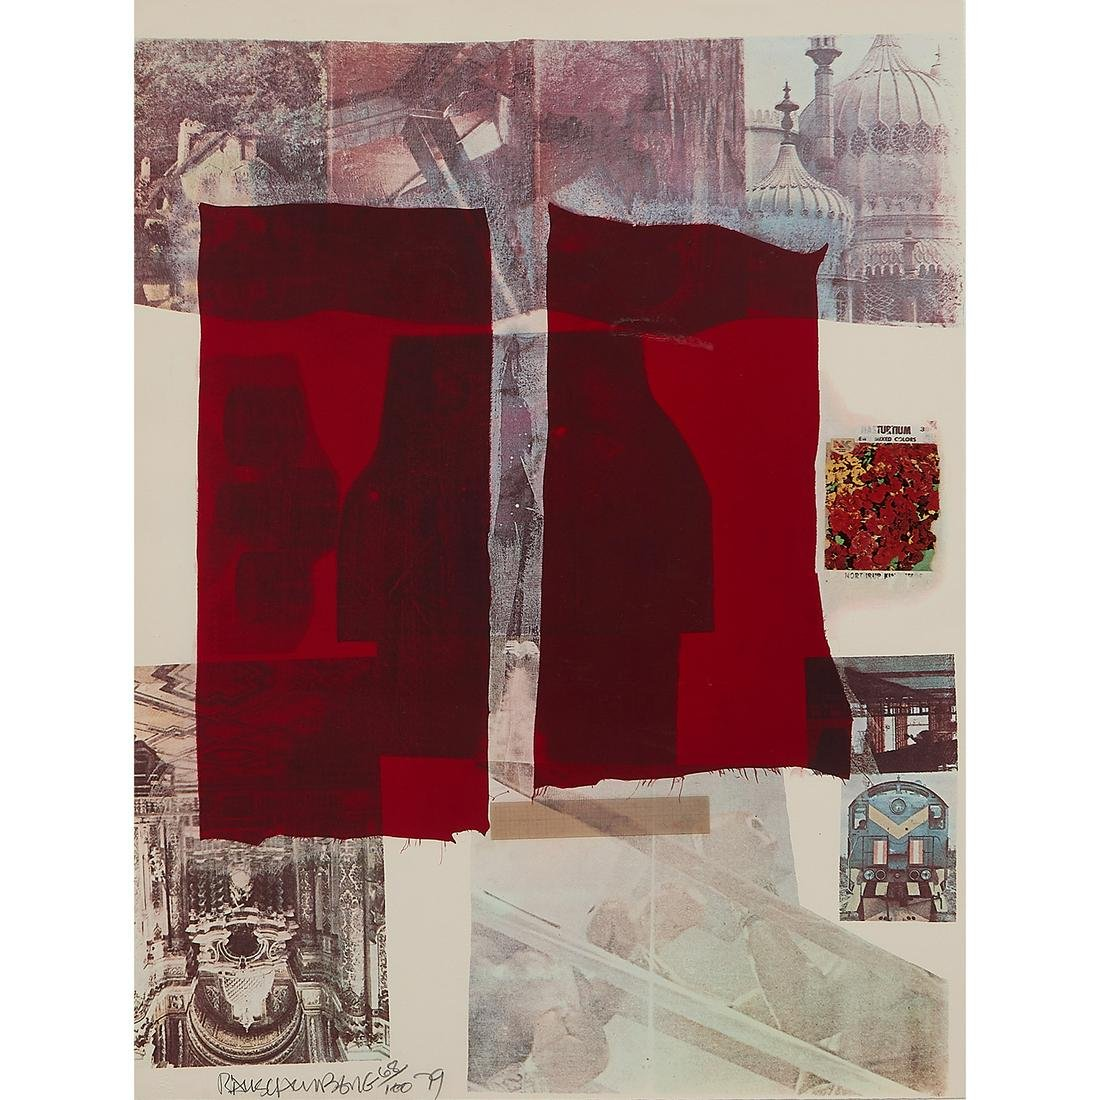 Robert Rauschenberg, Why You Can't Tell #II